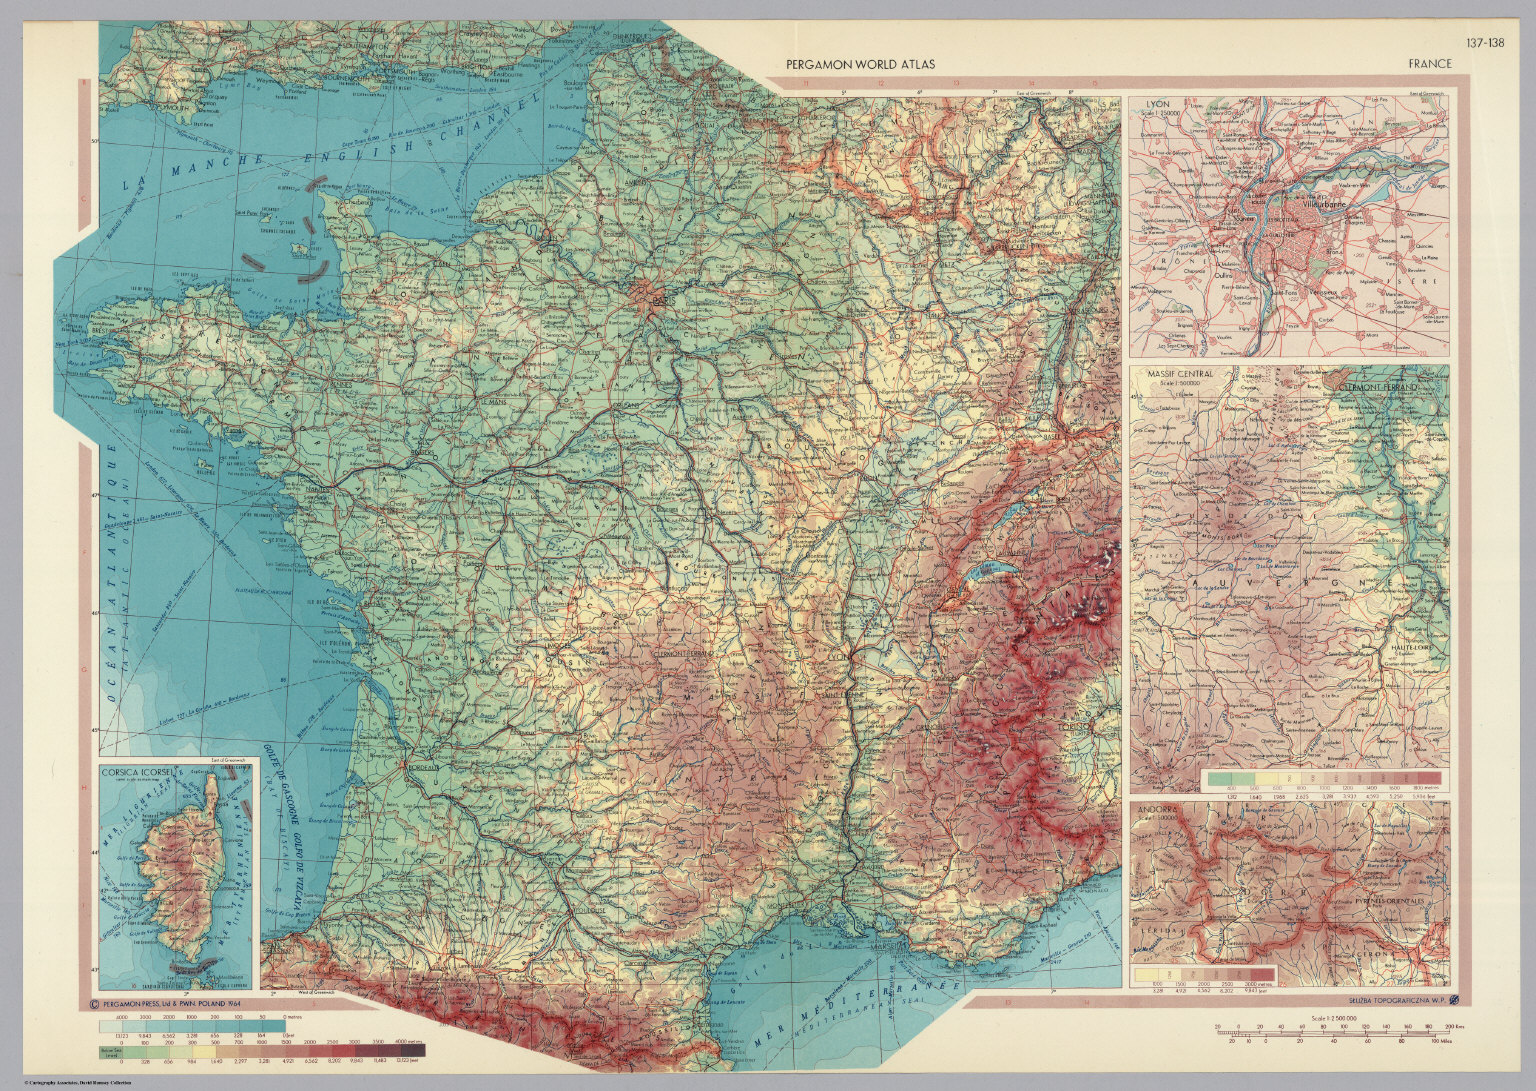 France pergamon world atlas david rumsey historical map collection france pergamon world atlas gumiabroncs Images